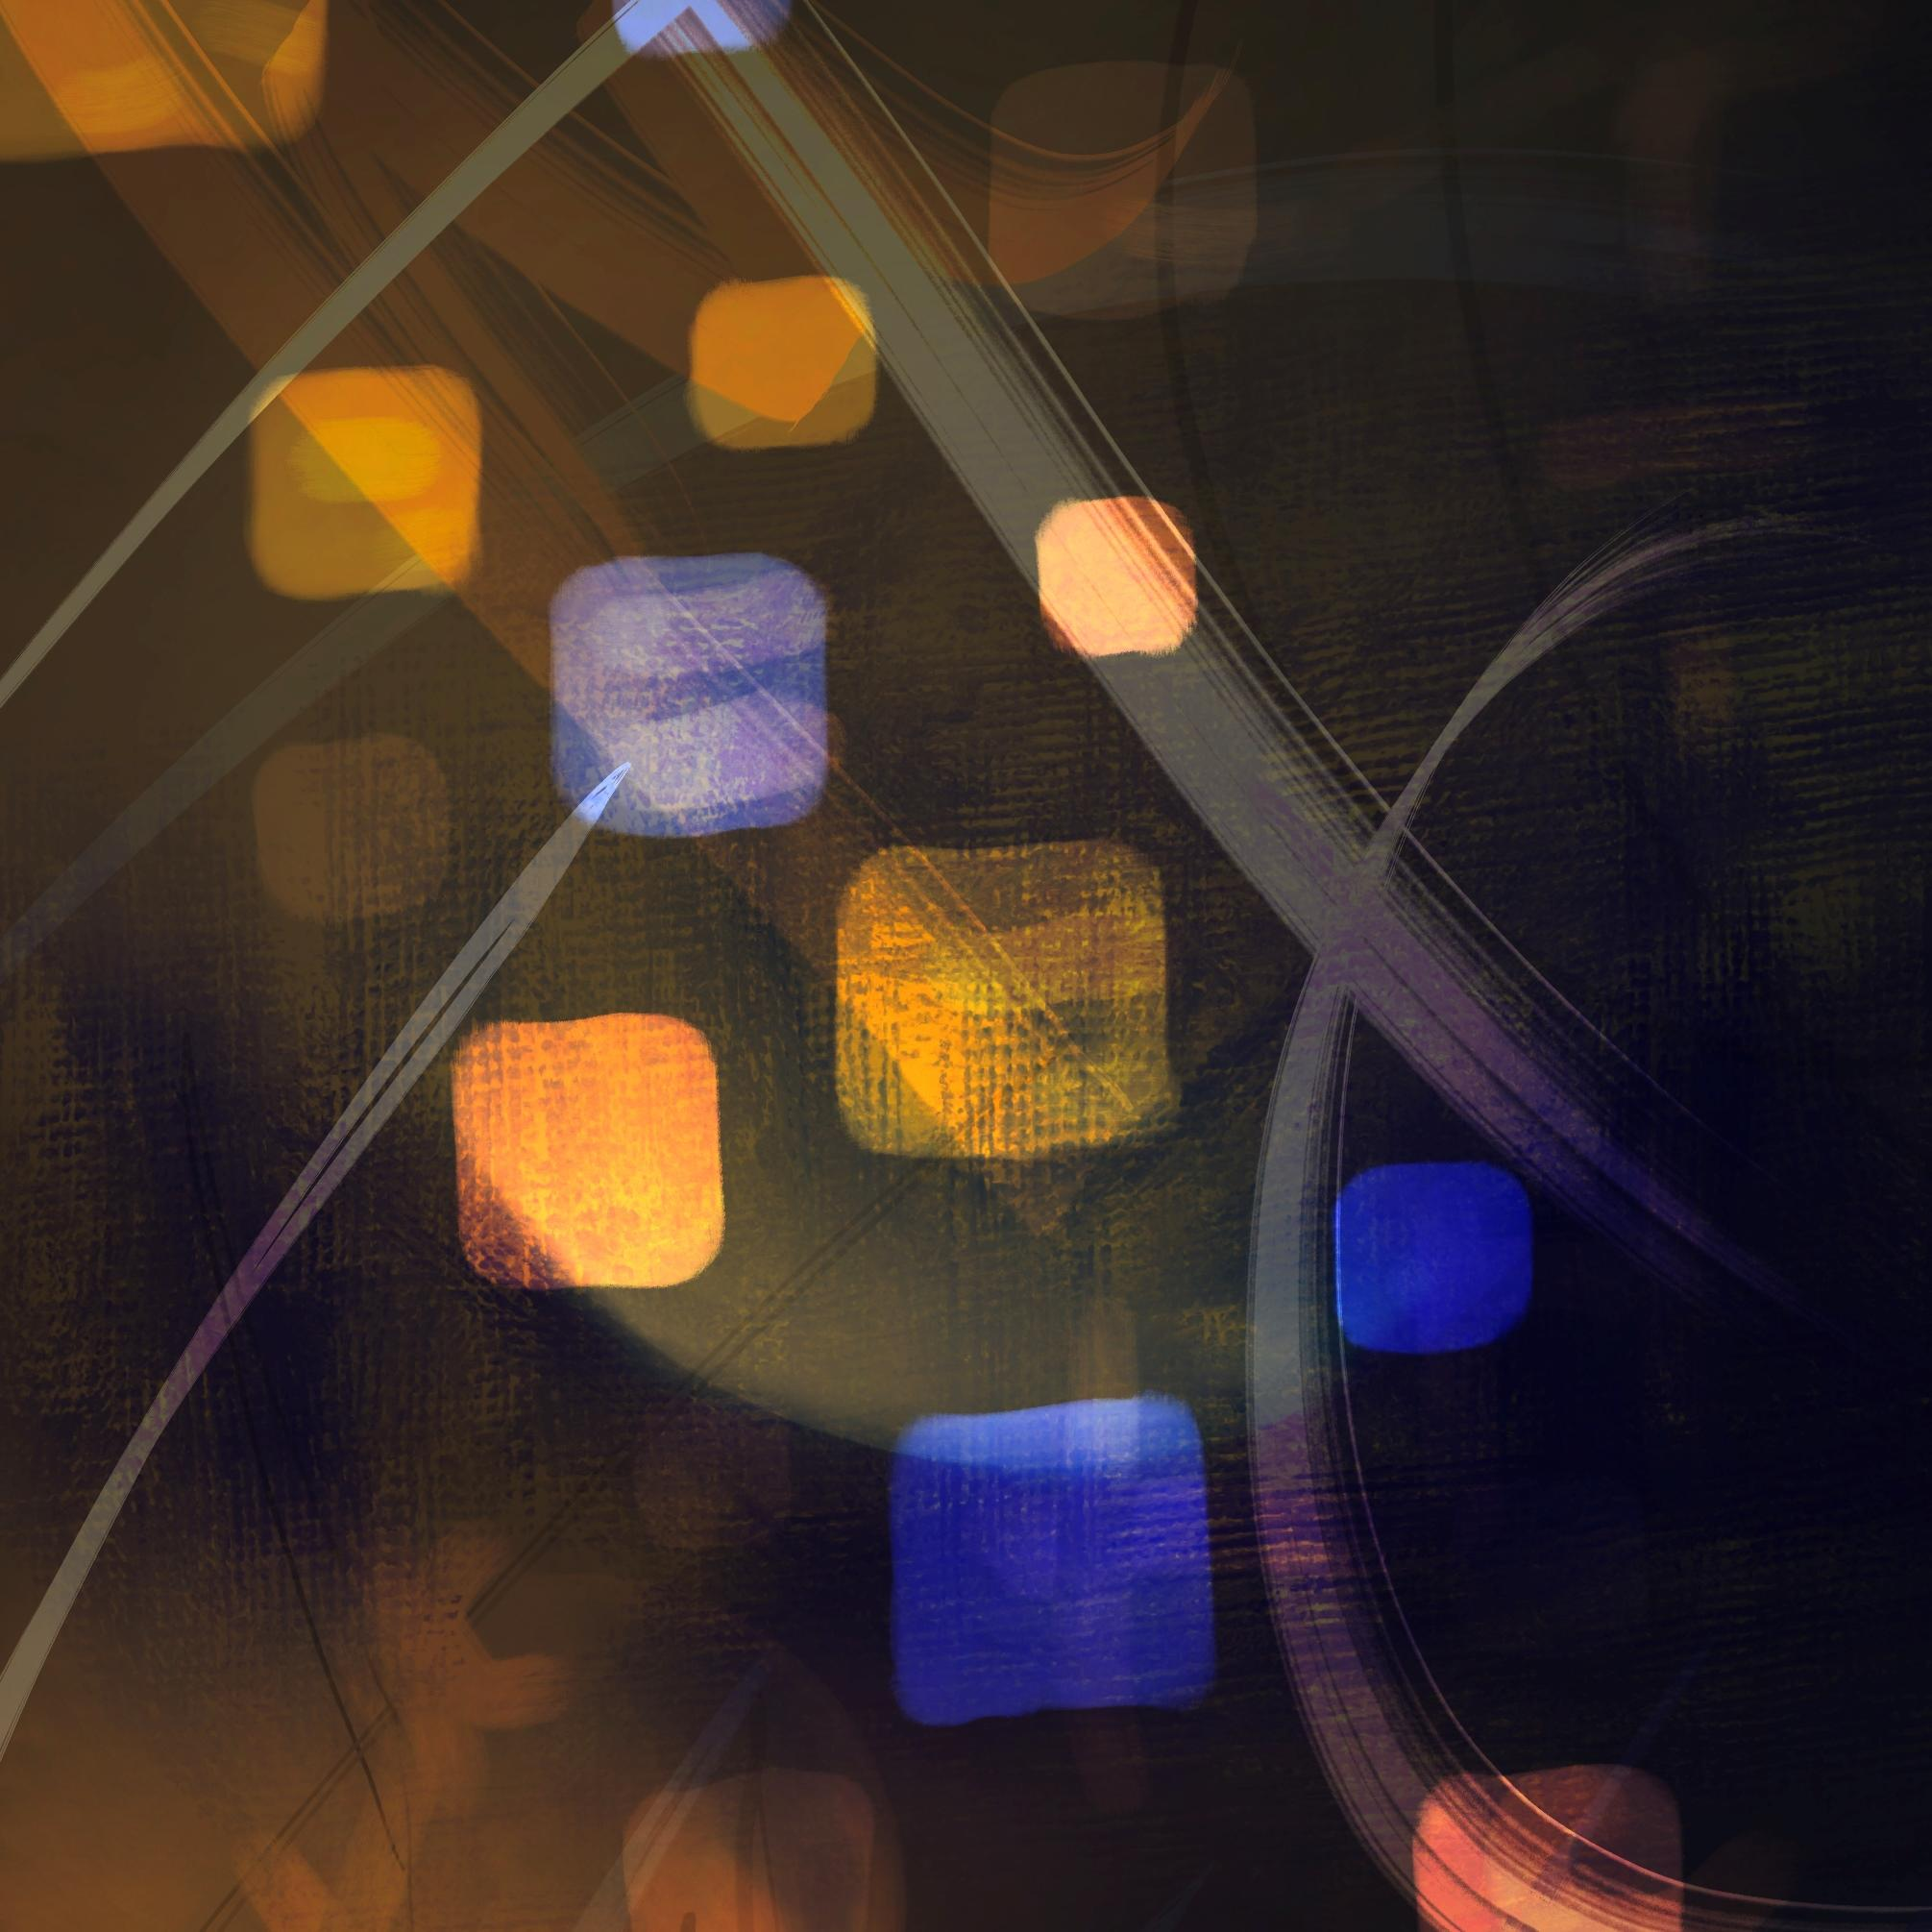 An abstract digital painting by Lily Bourne titled Abstract 2.0. Coloured with a series of shapes and stroke in blue and yellow on a brown background.